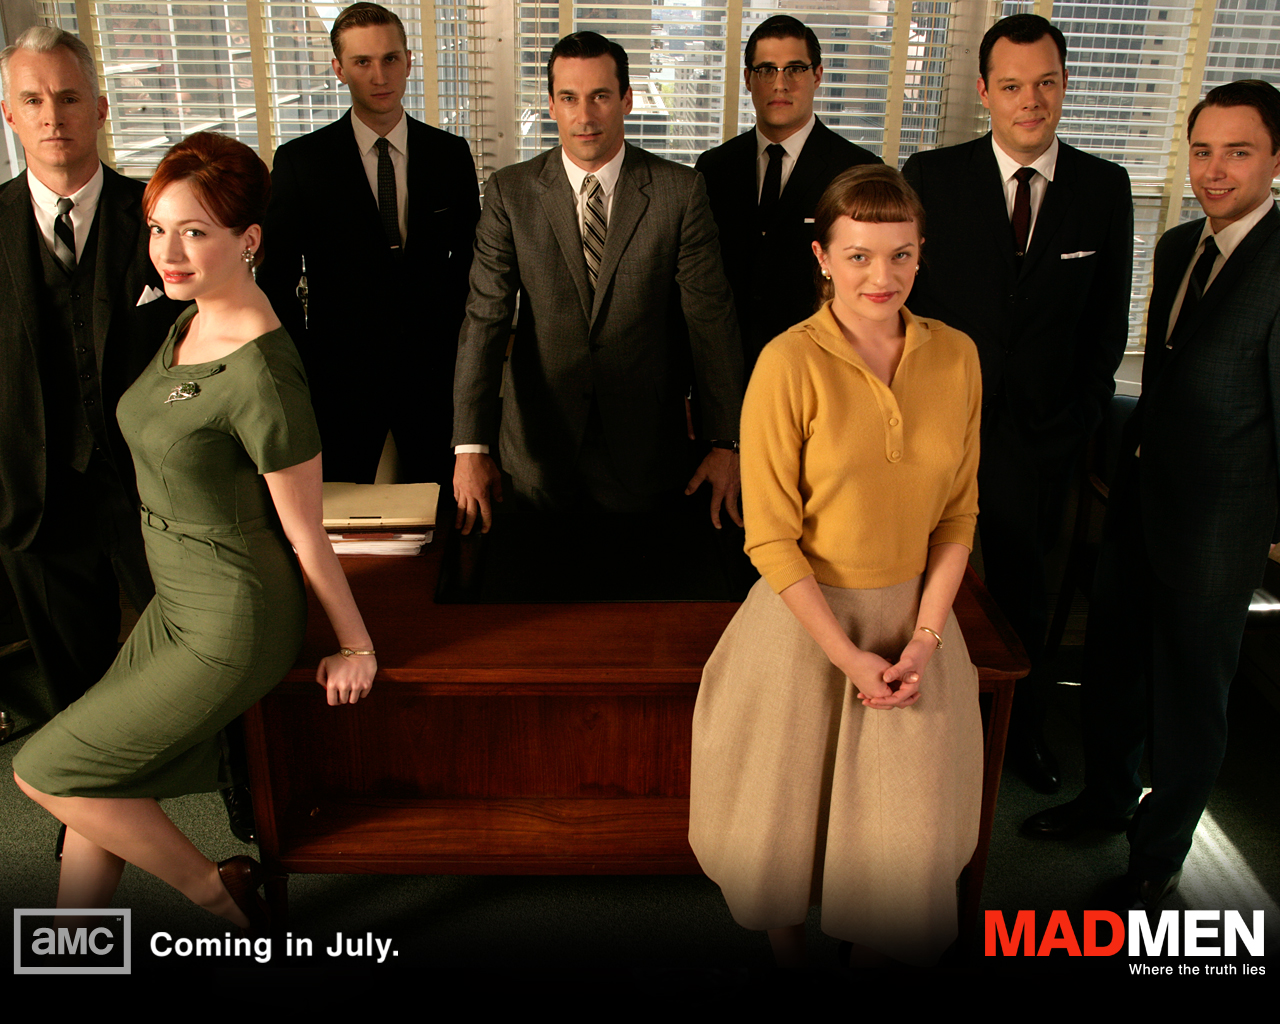 http://1.bp.blogspot.com/_nD_YgZuOadA/TLzPRsbsnDI/AAAAAAAABPI/6bHvTIxN8bY/s1600/Christina_Hendricks_in_Mad_Men_TV_Series_Wallpaper_3_1280.jpg